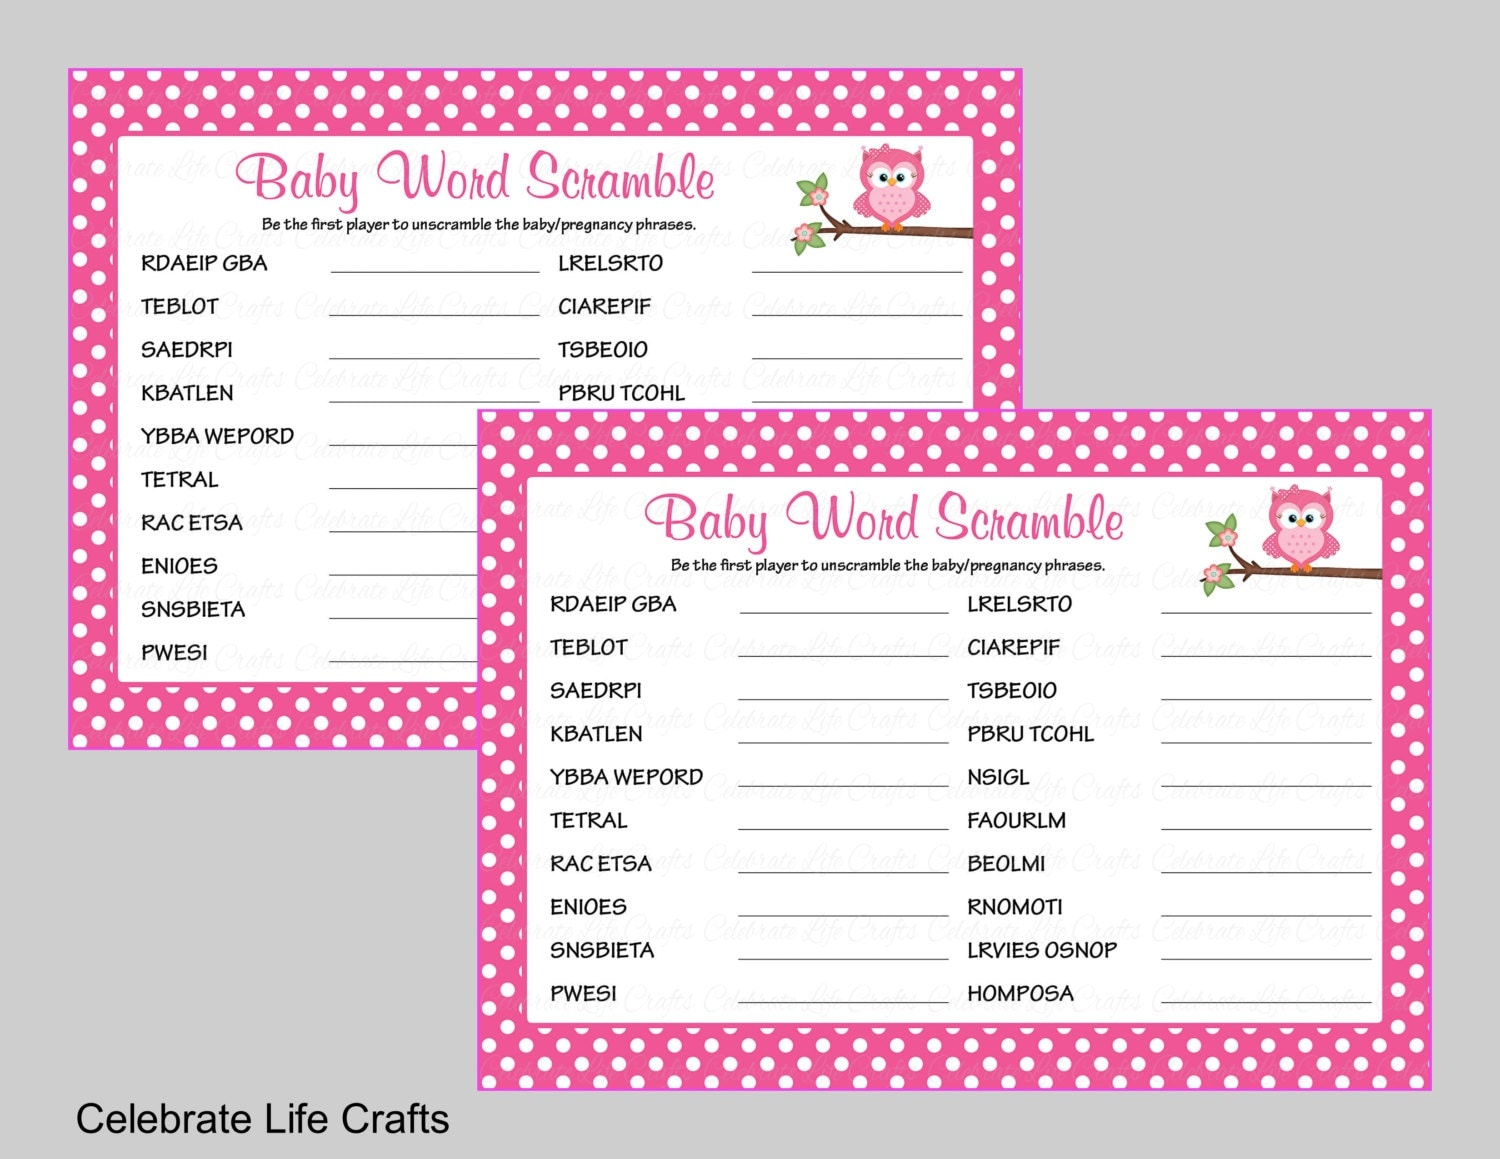 Divine image for baby shower word scramble printable